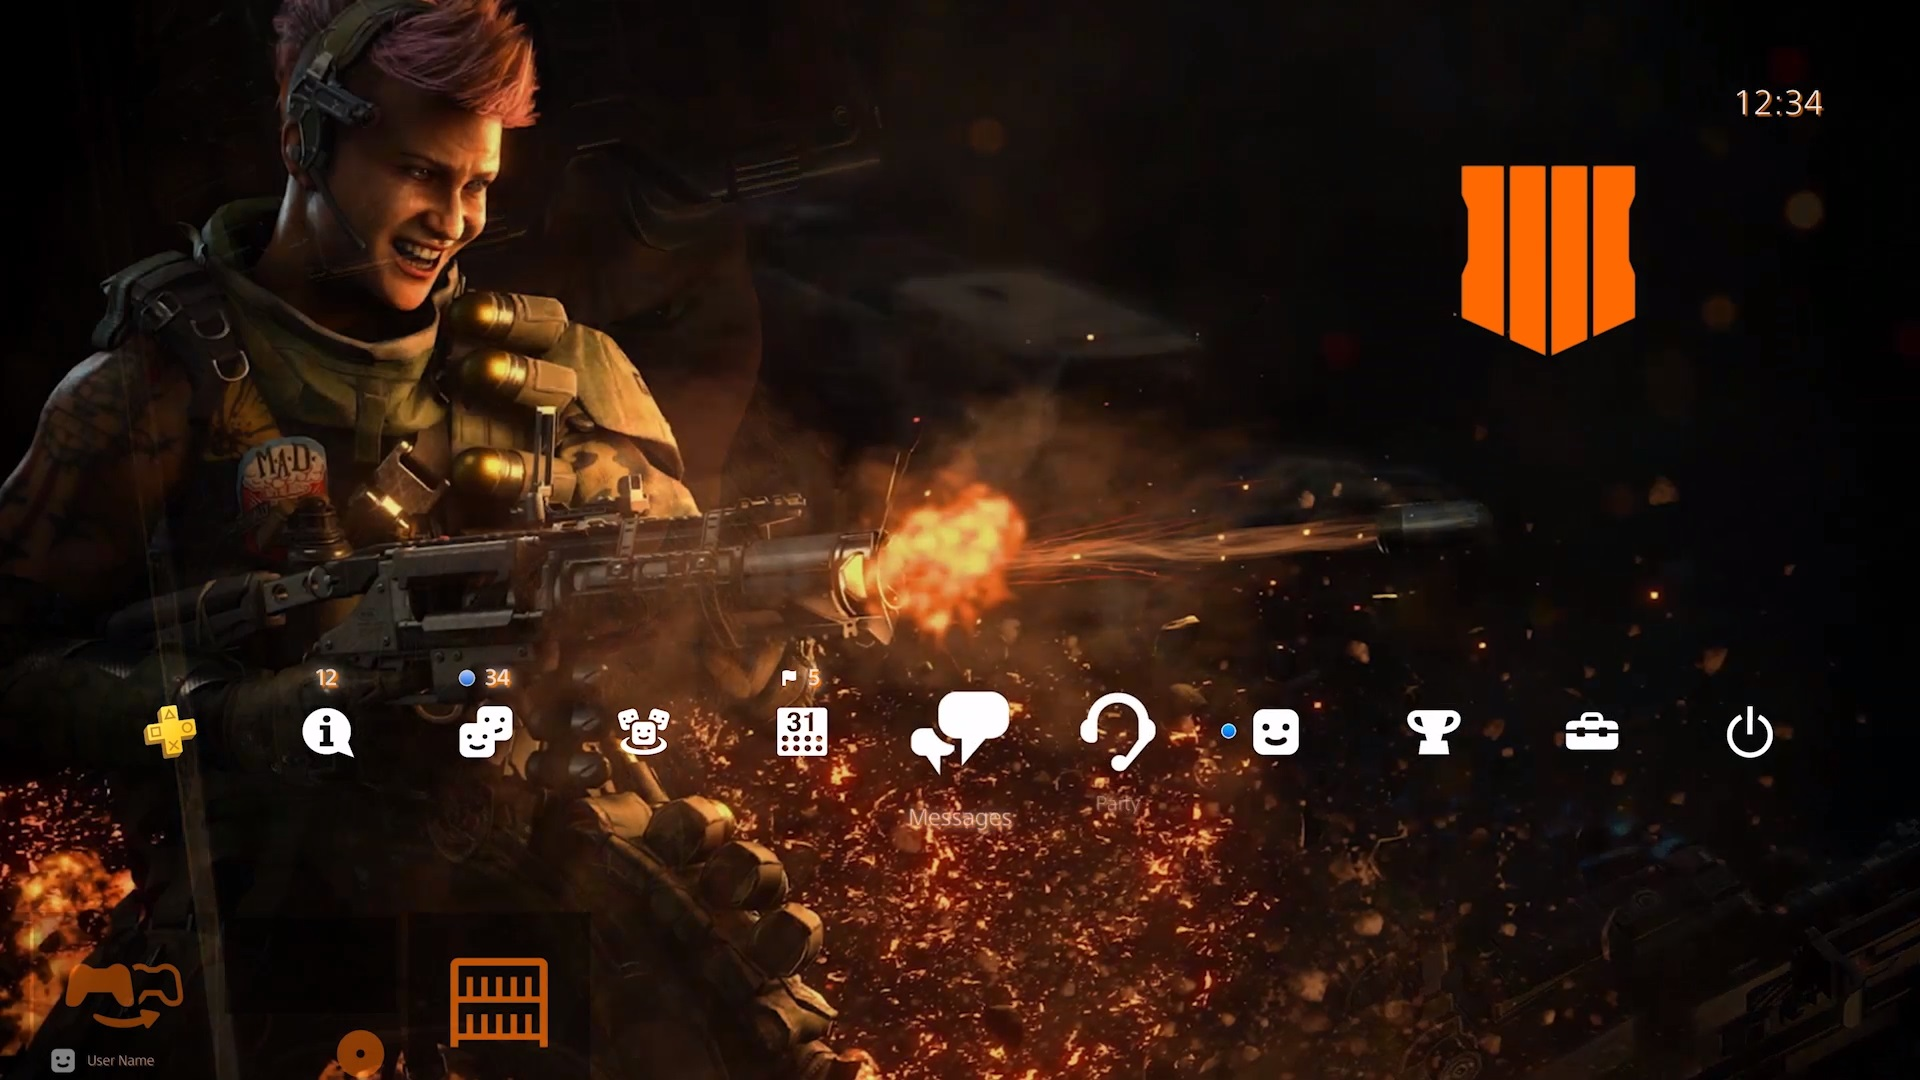 Free Call Of Duty Black Ops 4 Ps4 Theme Part Of Launch Event